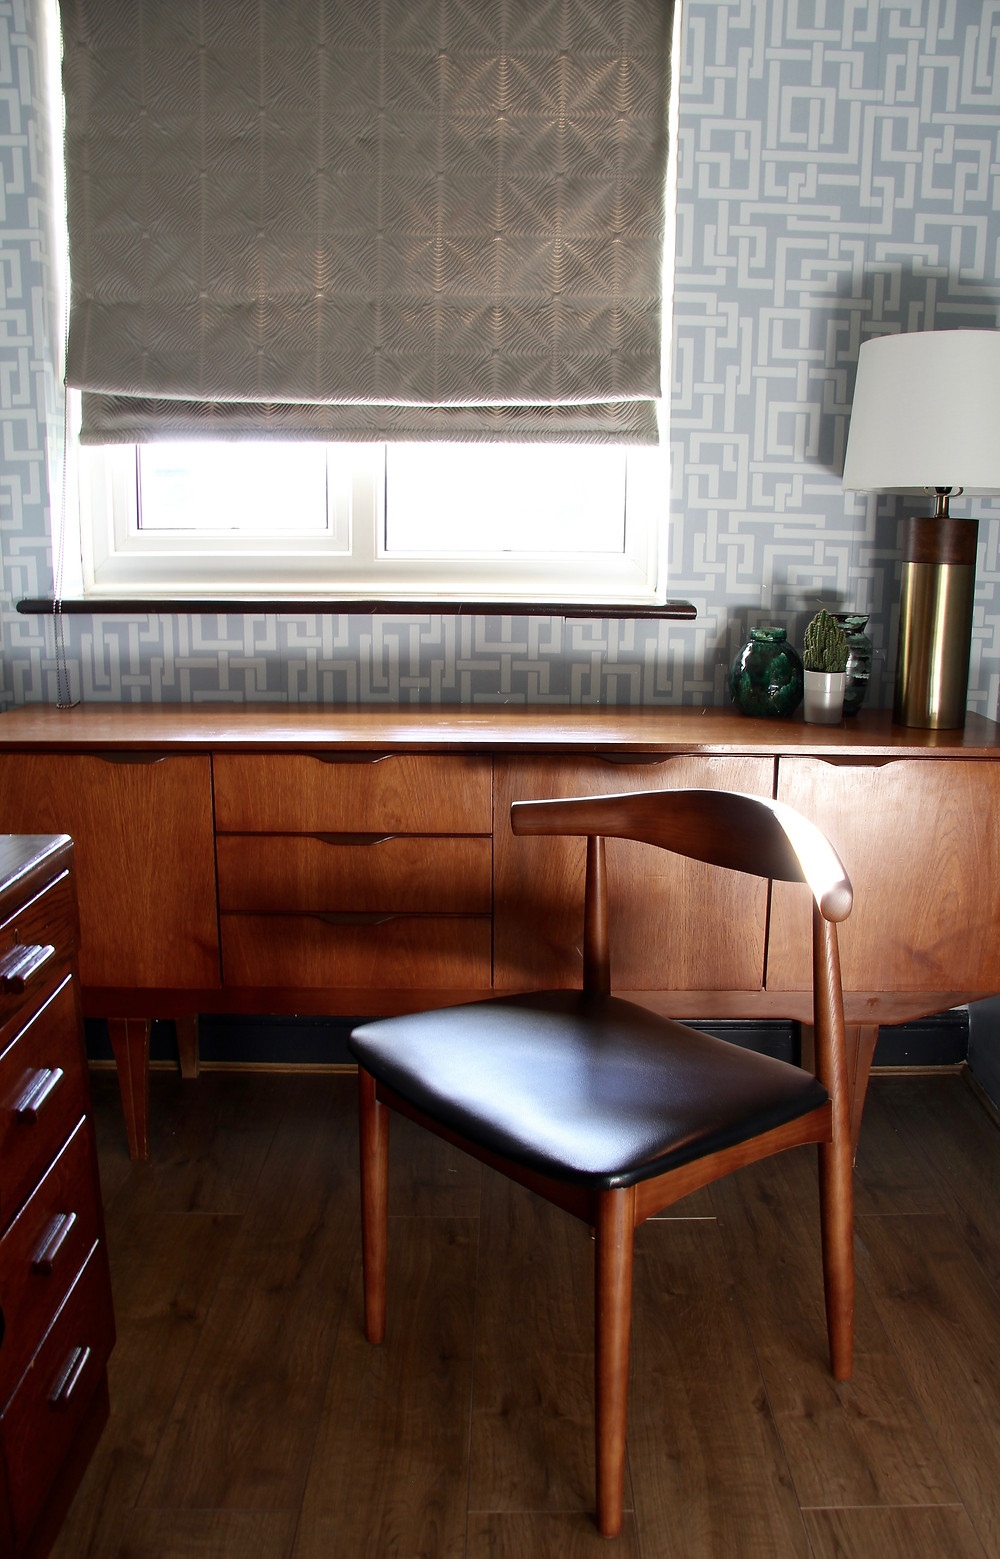 Enigma wallpaper in blue, mid century desk, Hailey chair Made.com and red Anglepoise desk lamp, Butch Anthony, IKEA bookcase hack